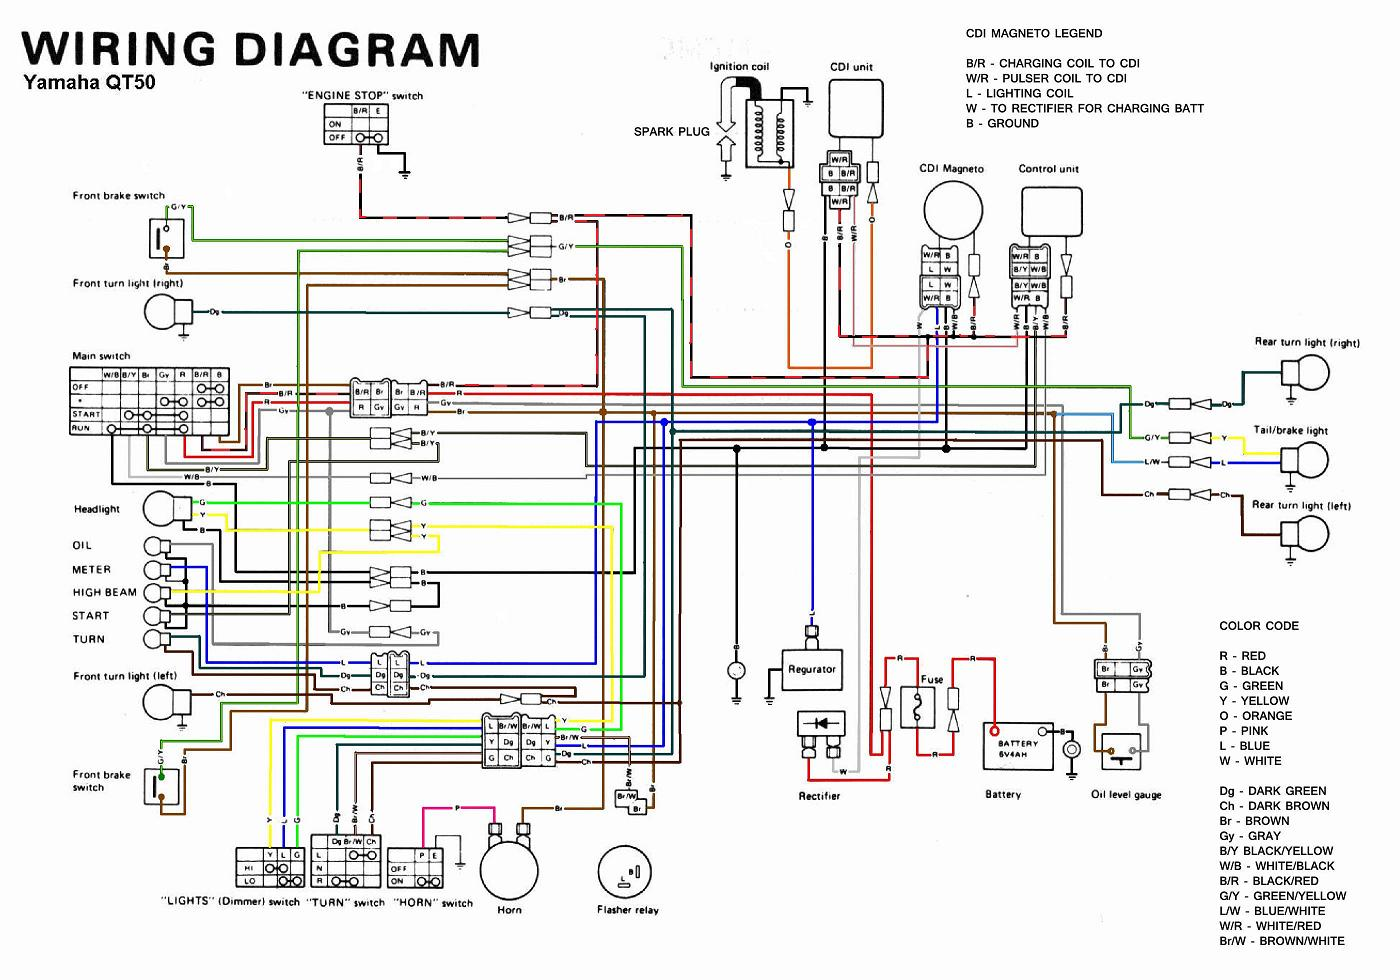 Yamaha QT50 Wiring Diagram honda 50 wiring diagram xr 400 wiring diagram \u2022 free wiring  at eliteediting.co